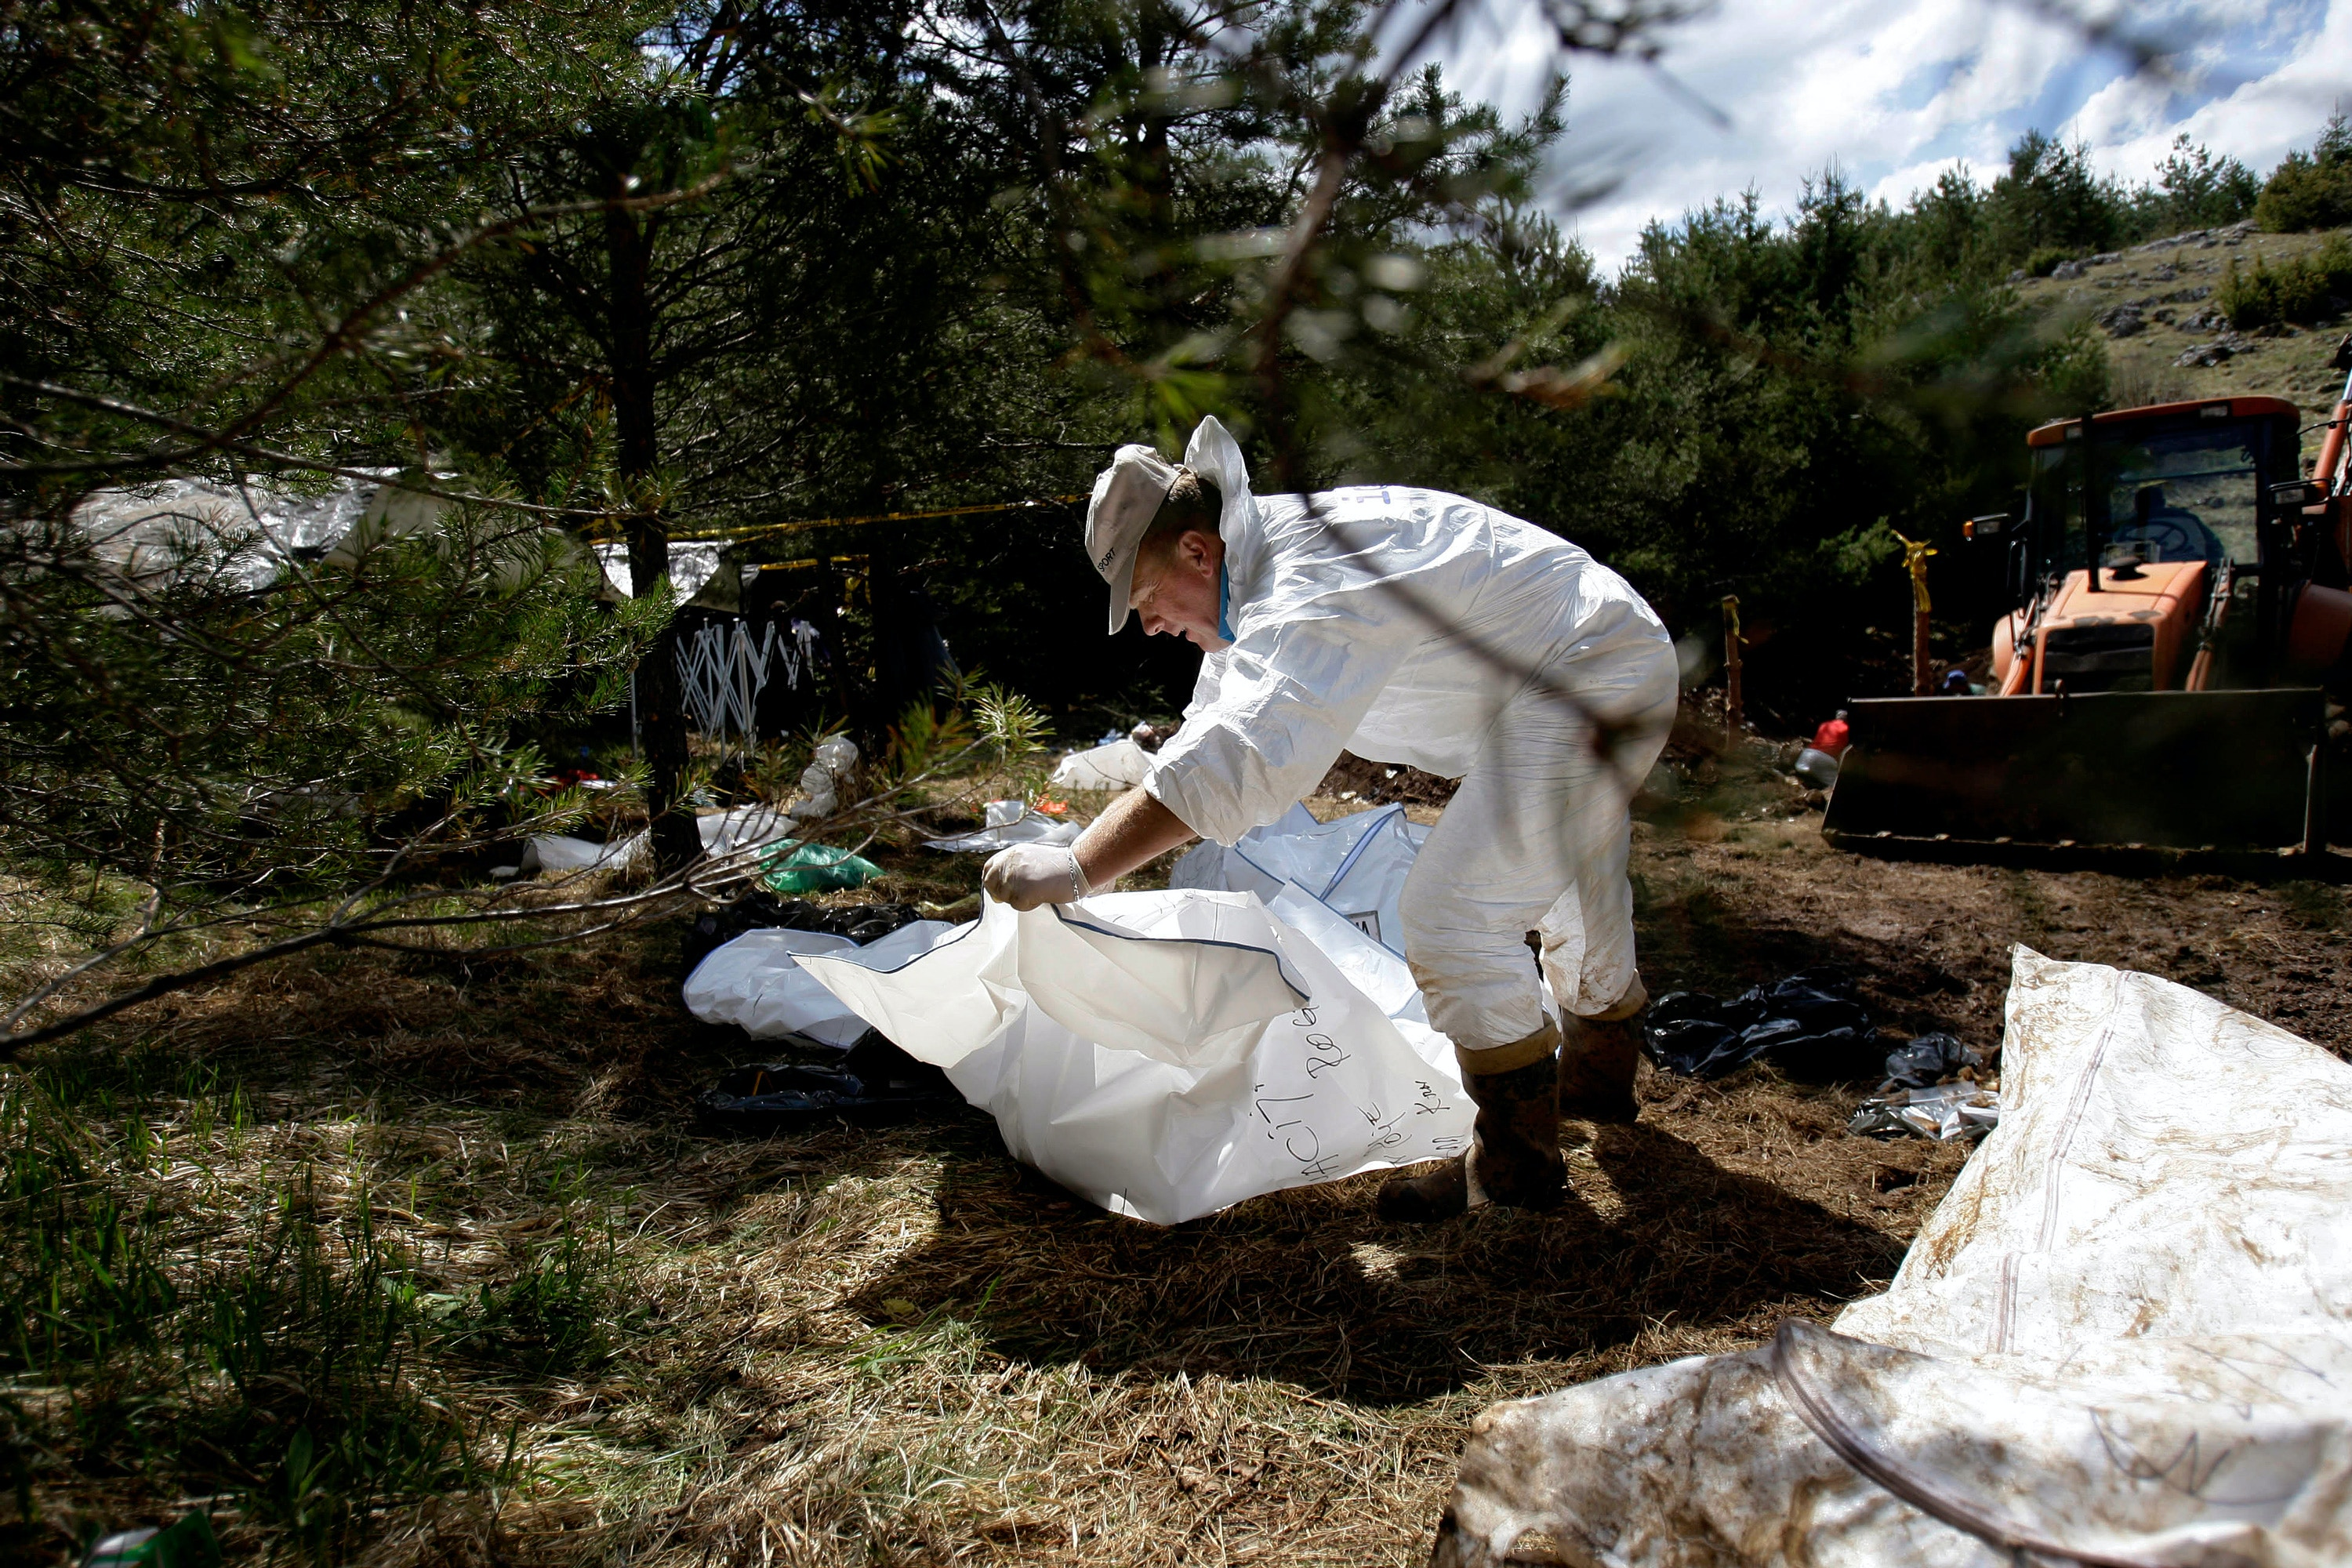 Bosnian forensic technician sorts packages containing human remains found in a mass grave in the village of Ivan Polje near Eastern Bosnian town of Rogatica, 70 kms east of Sarajevo, on Tuesday, May 10, 2011. Forensic experts believe that this mass-grave may contain dozens of remains believed to be those of Bosnian Muslims from Rogatica area killed in 1992 at the beginning of war in Bosnia.(AP Photo/Amel Emric)